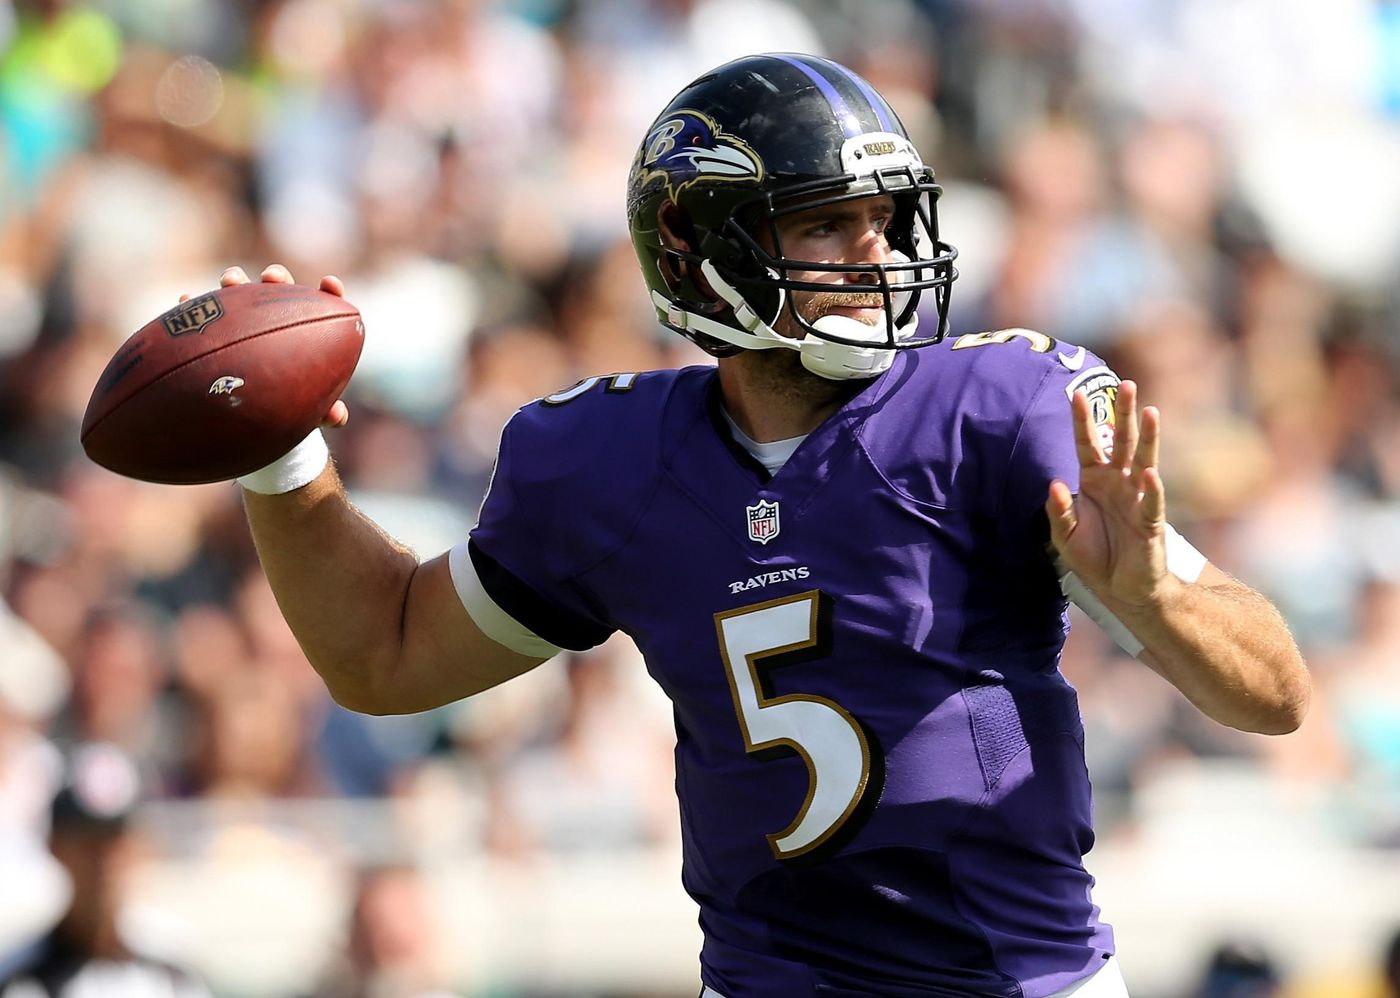 Jets Signing Ex Super Bowl Mvp Joe Flacco To 1 Year Deal Source